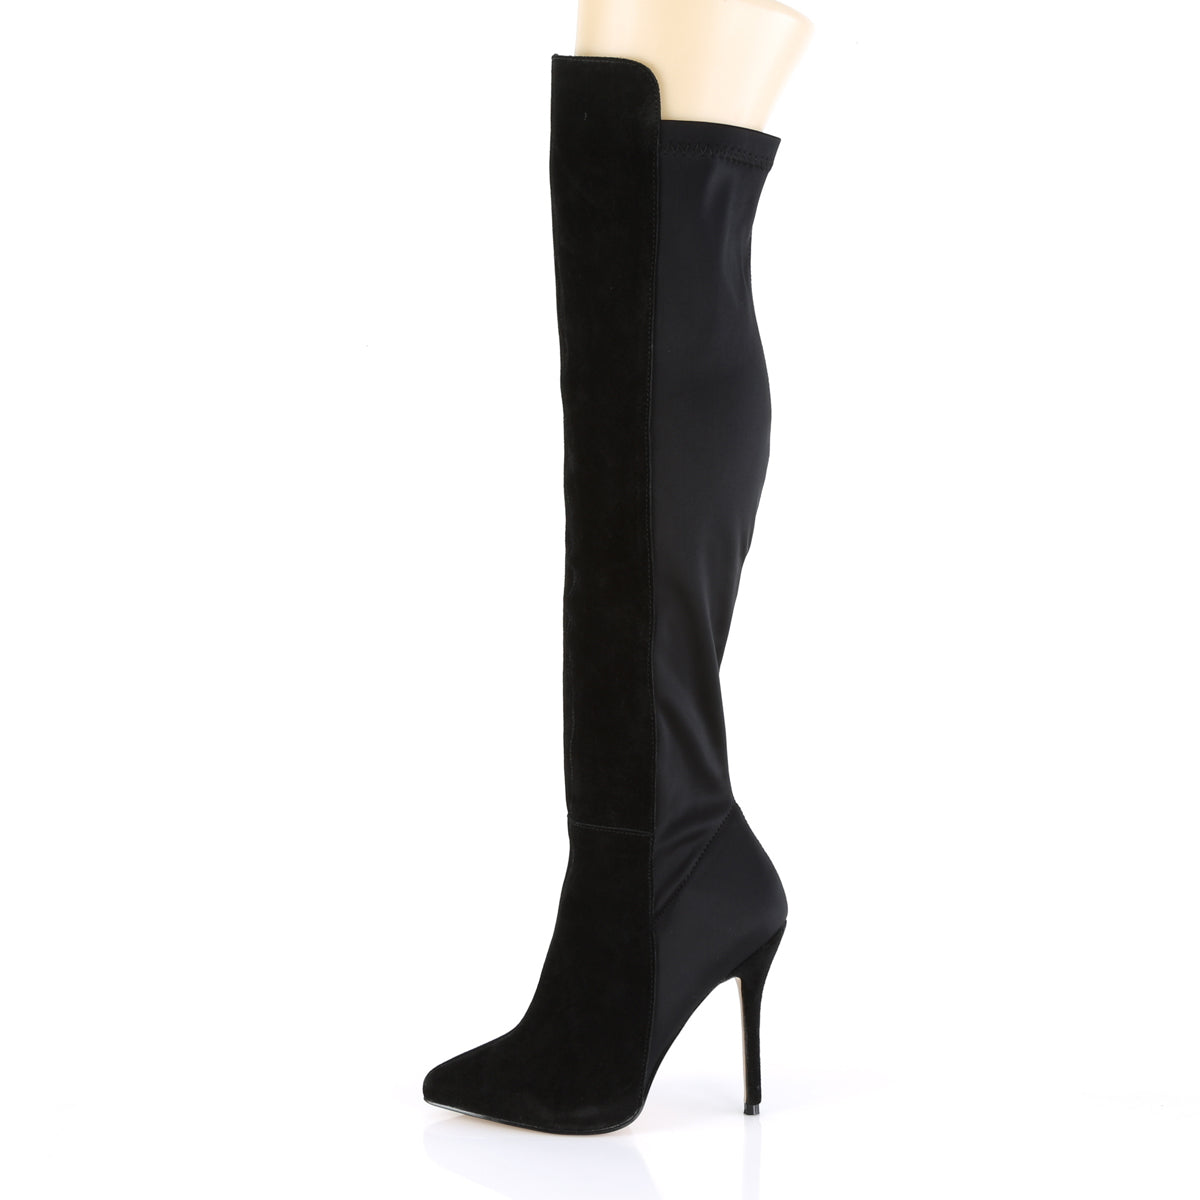 2ec7788ee93 AMUSE-2018 Pleaser Sexy Shoes 5 Inch Heel Platform Pull-On Over-The-Knee  High Boots